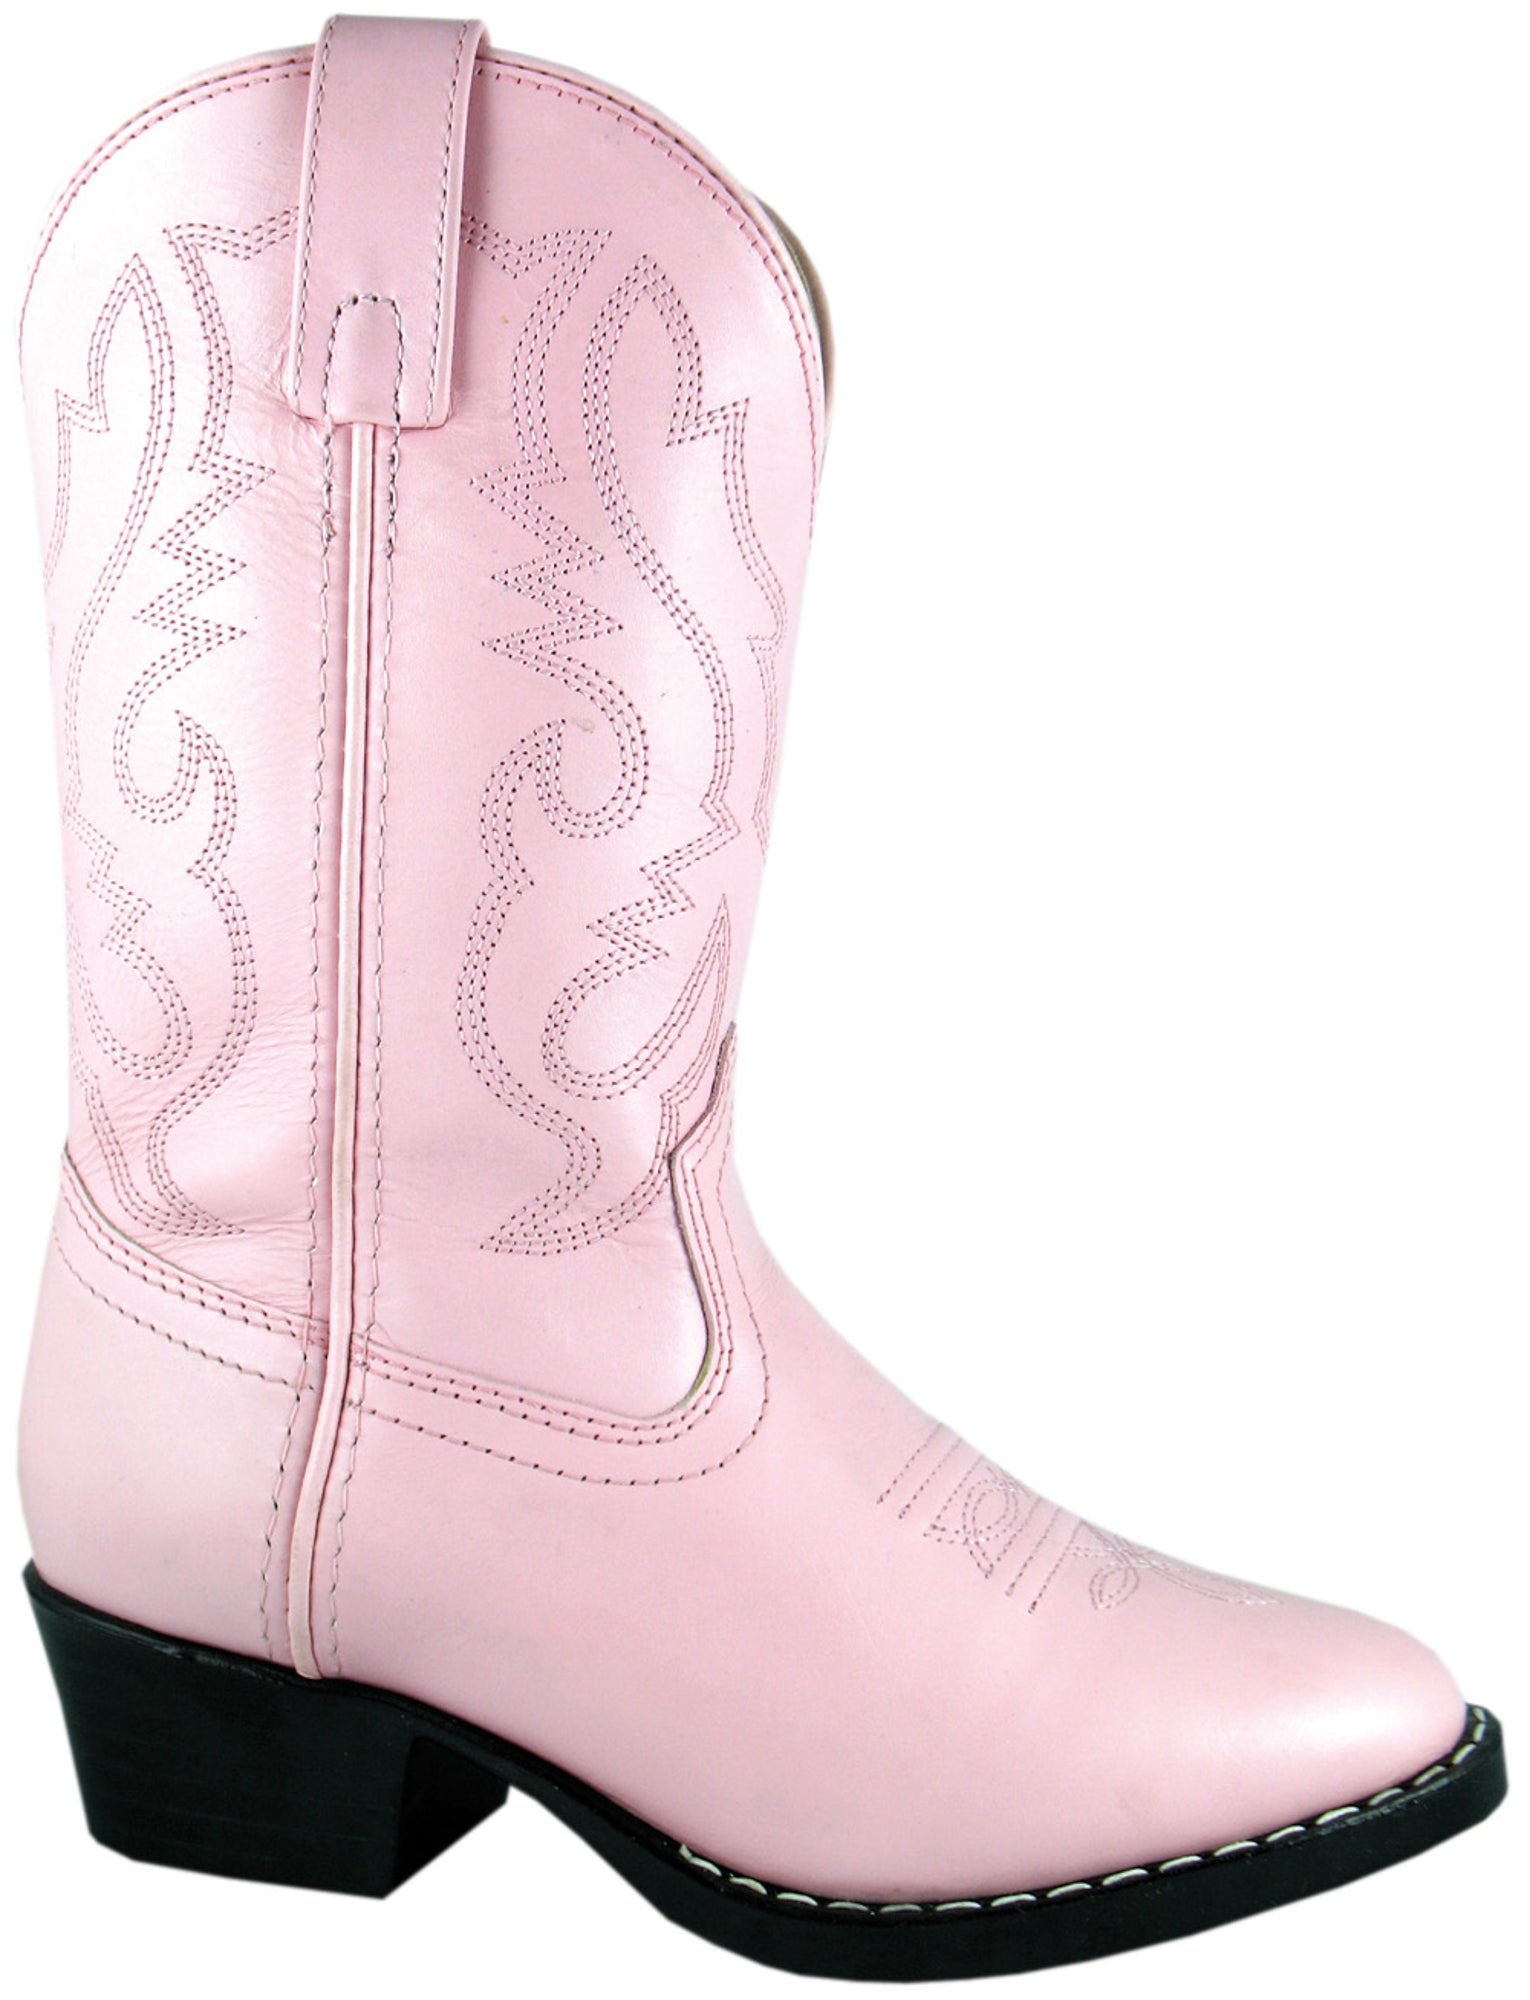 Smoky Mountain Kids Girl Denver Western Cowboy Boots Stitched Leather Brown//Pink